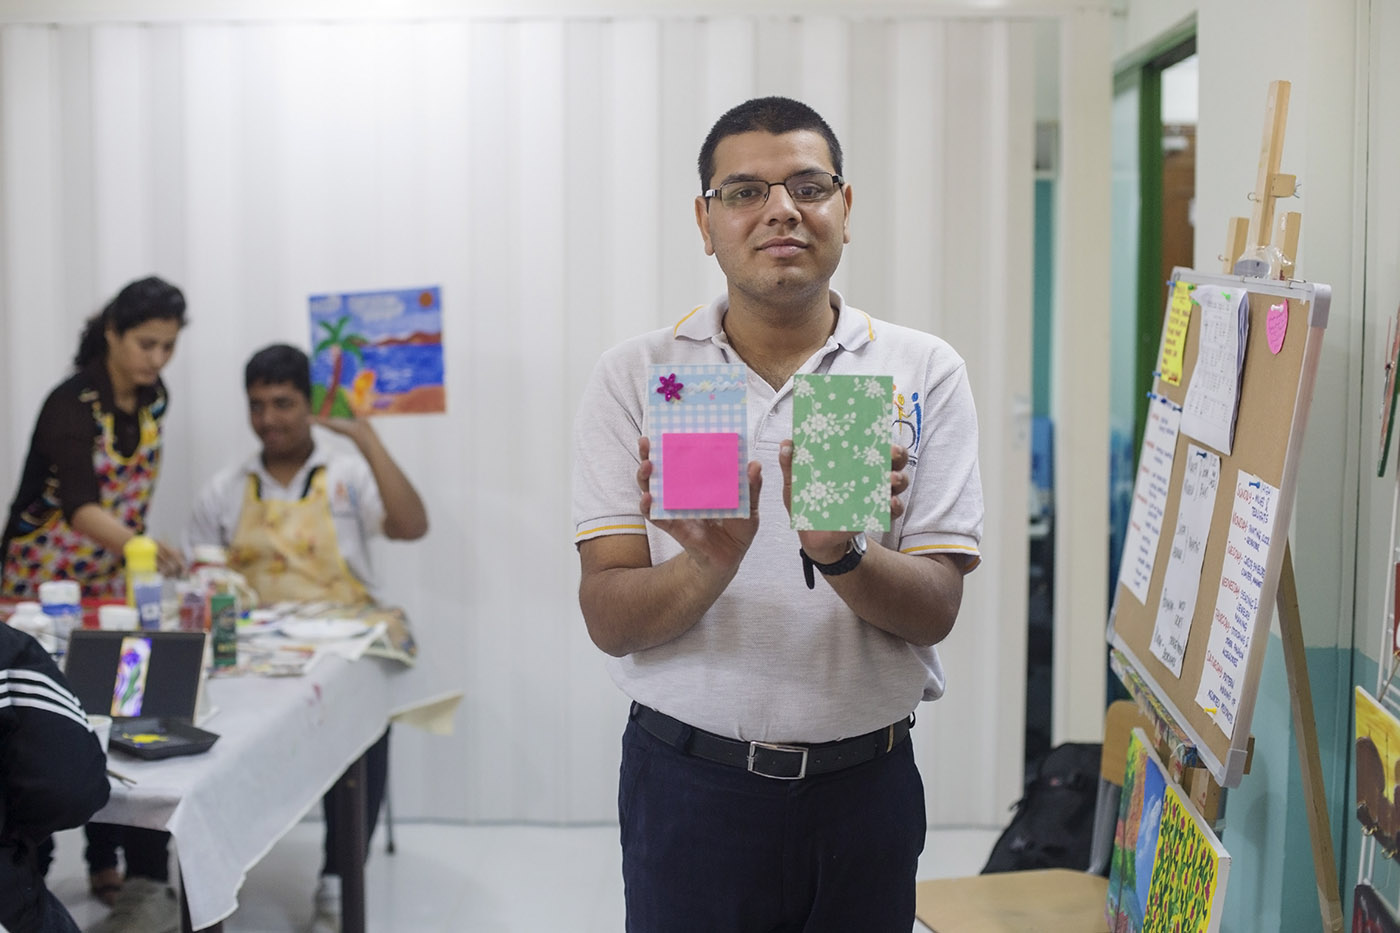 Portrait of a student with crafts